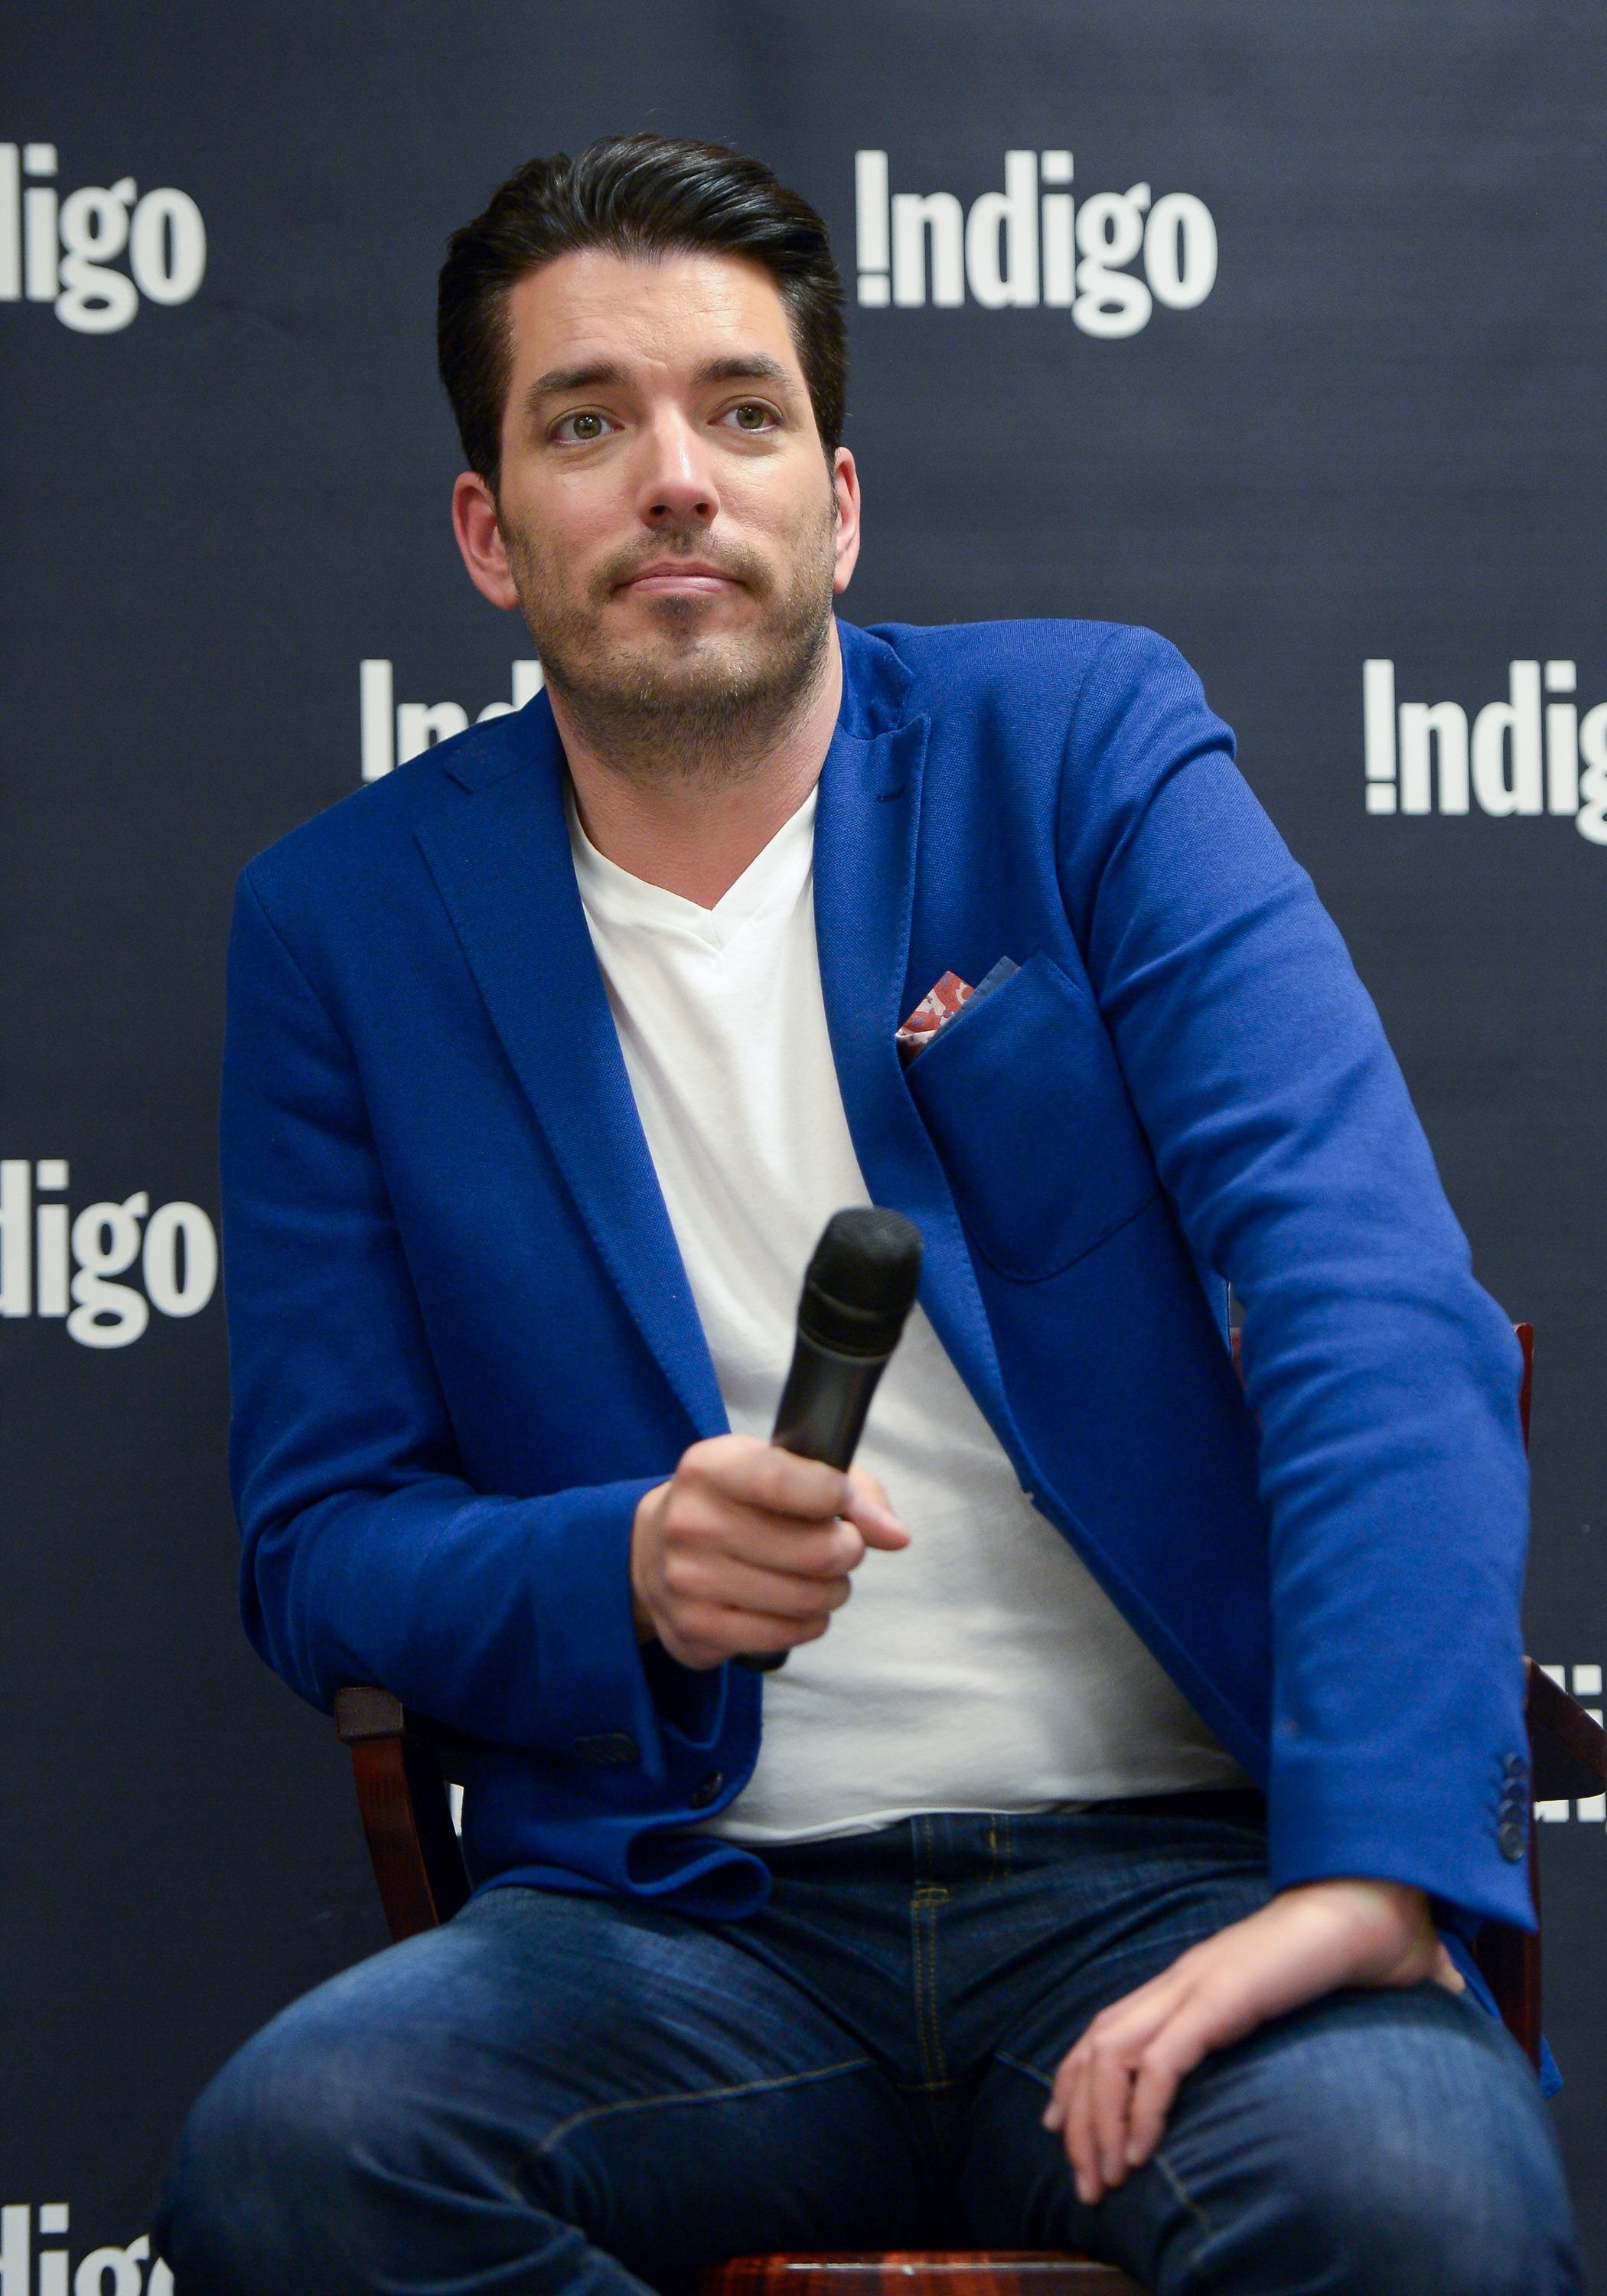 """Jonathan Scott at the launch of his new book """"Dream Home"""" at Indigo Manulife Centre on April 15, 2016, in Toronto, Canada 